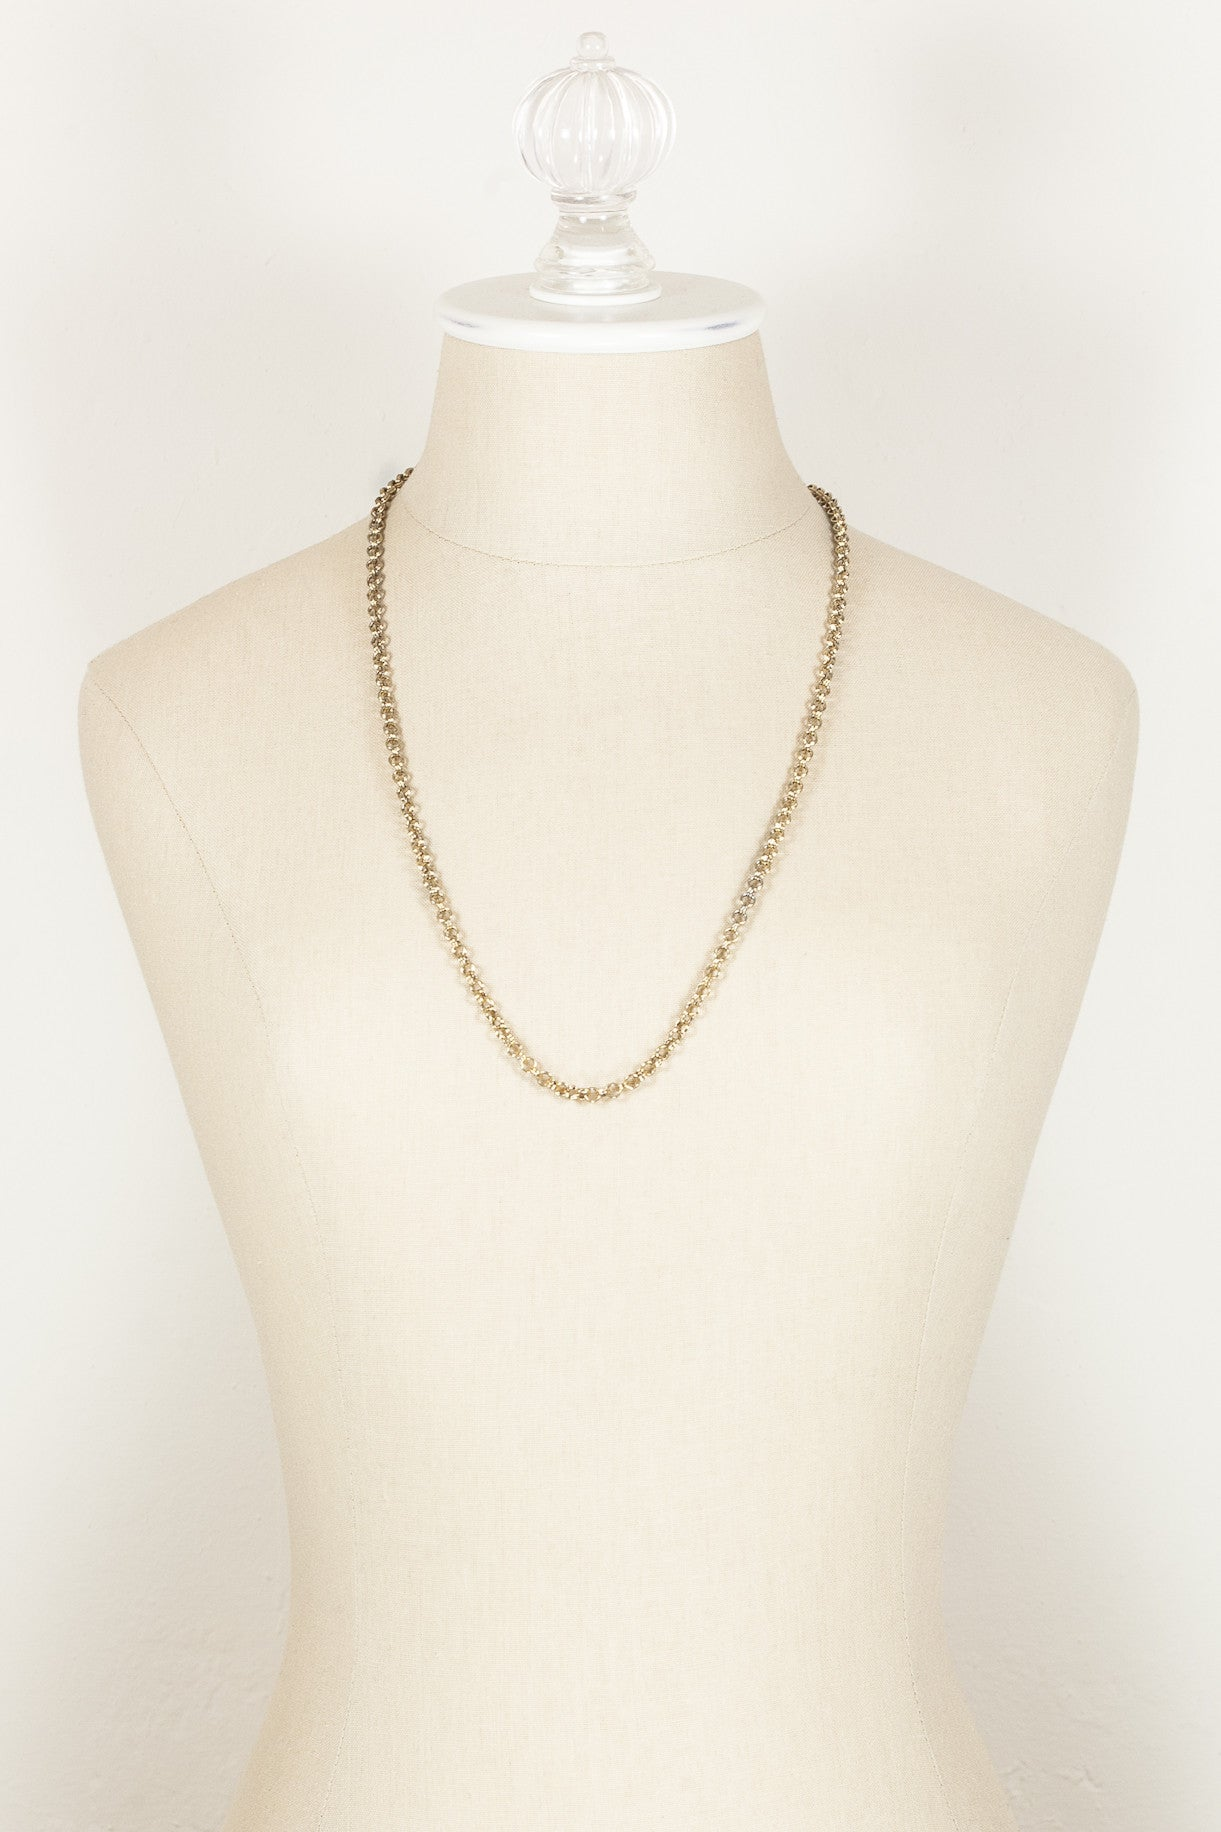 70's__Monet__Simple Chain Necklace